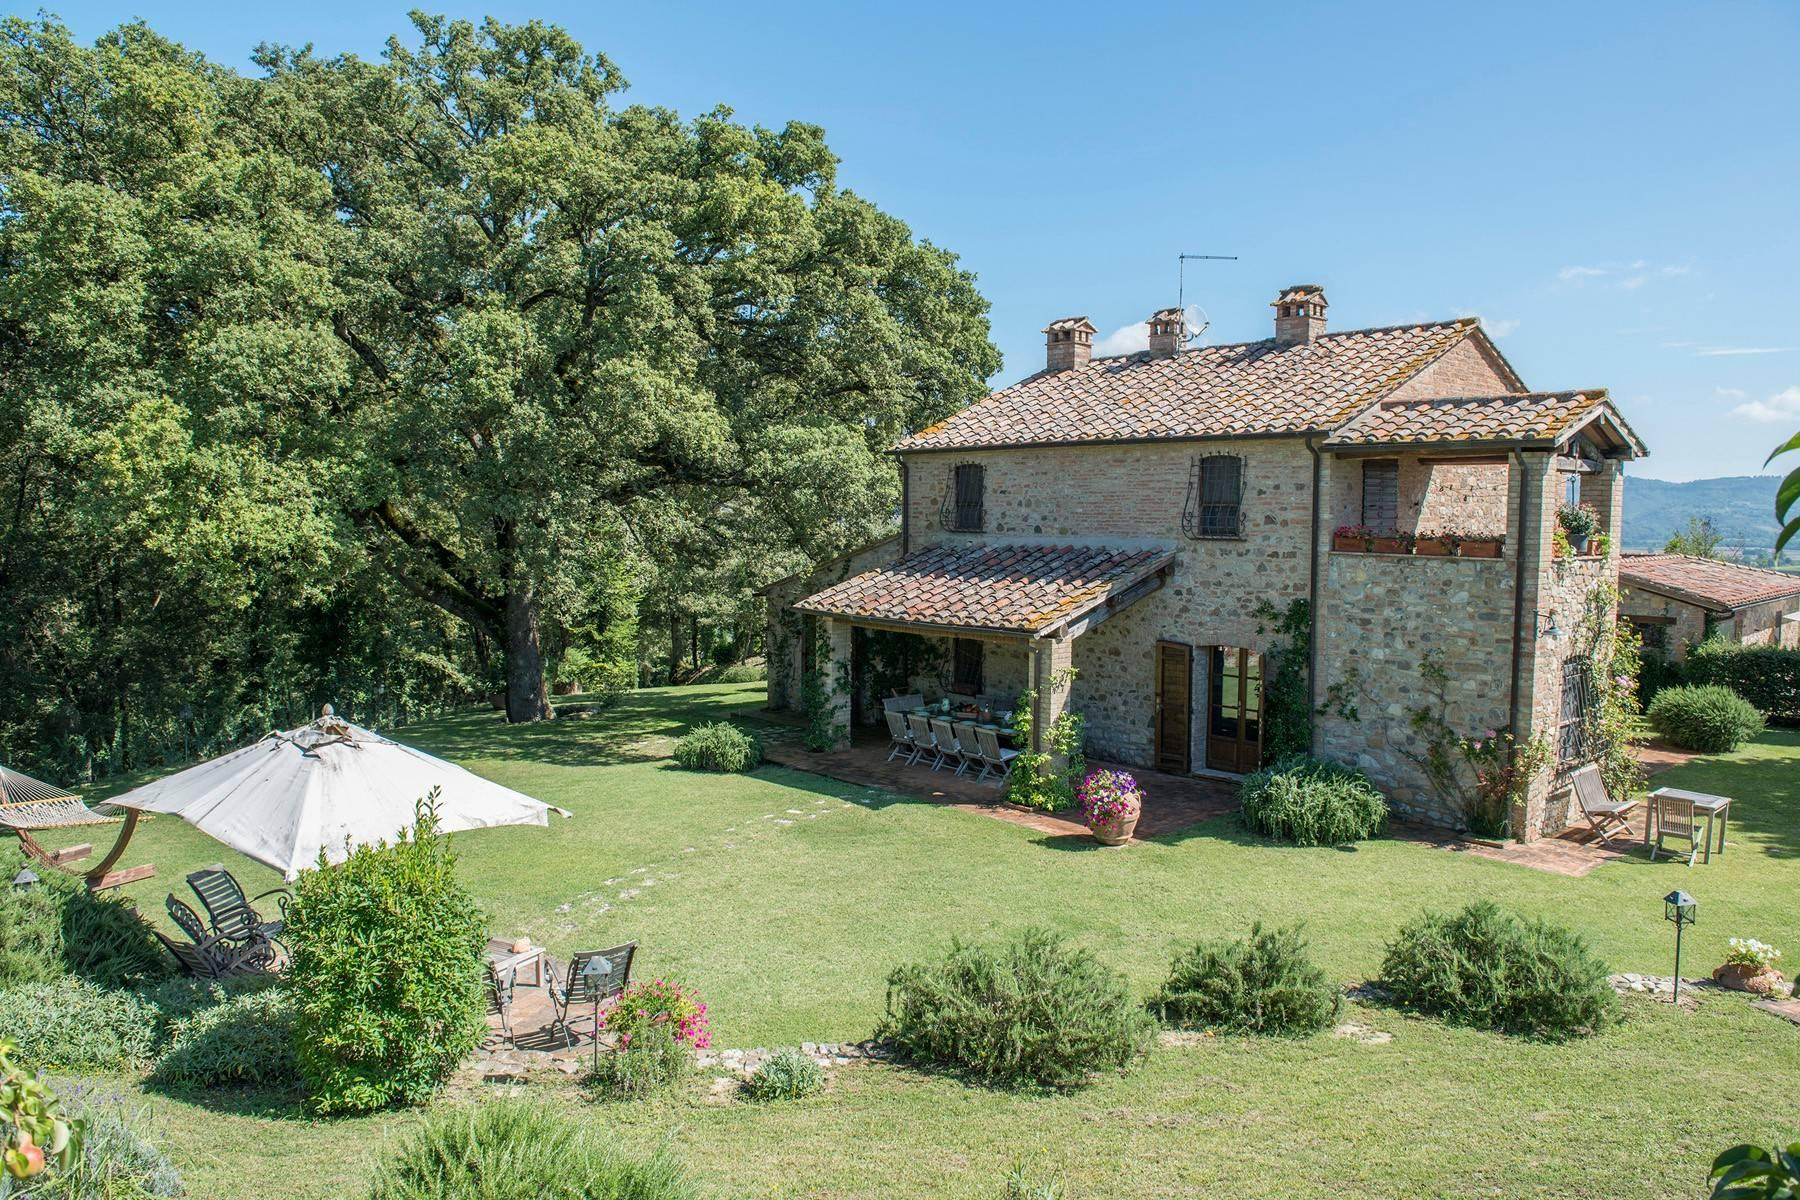 Stunning Farmhouse with pool on the border between Tuscany and Umbria - 1